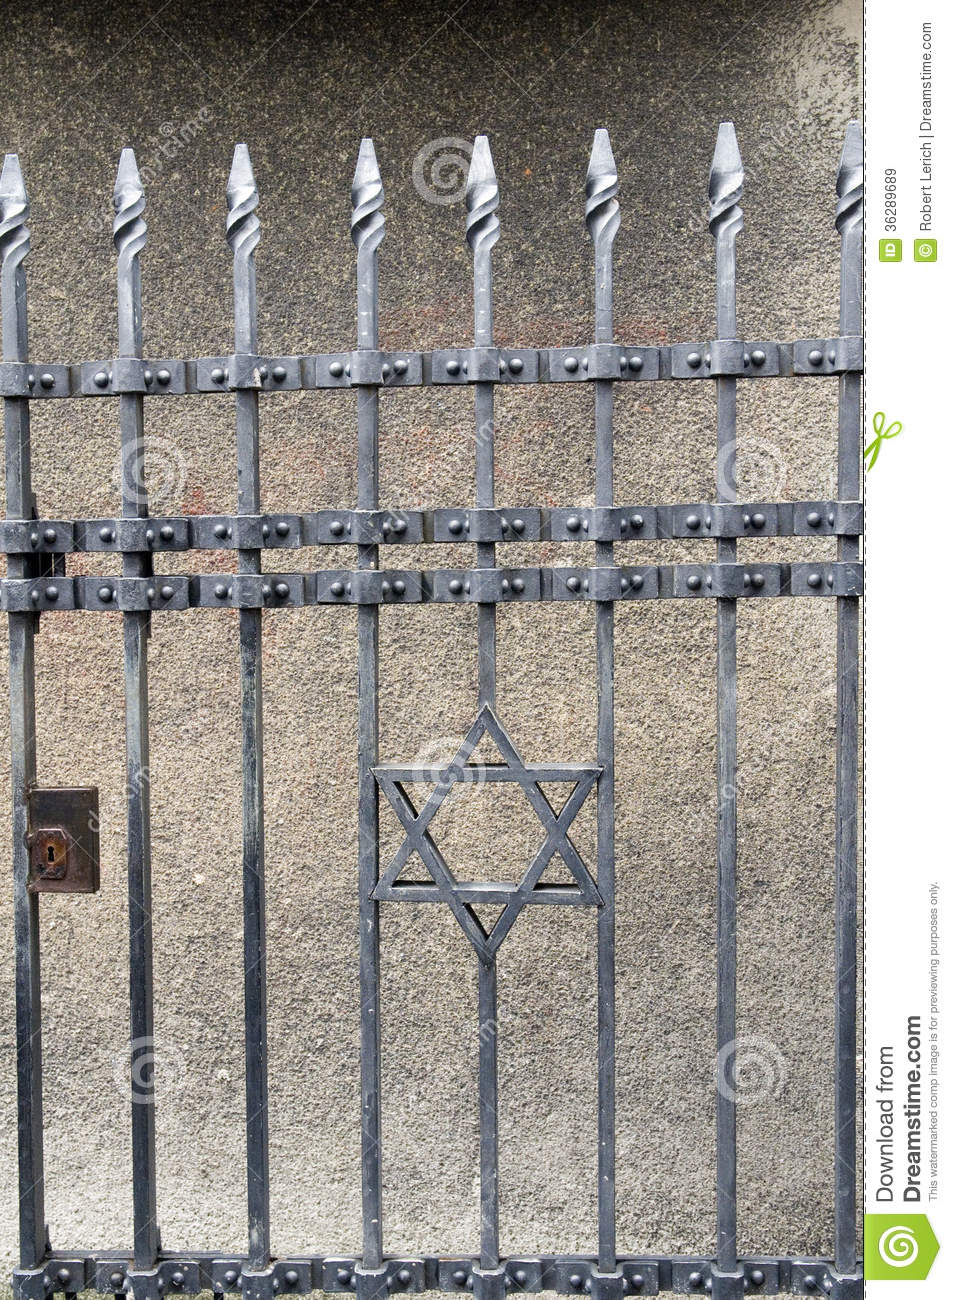 iron gate jewish personals Meet iron gate singles online & chat in the forums dhu is a 100% free dating site to find personals & casual encounters in iron gate.